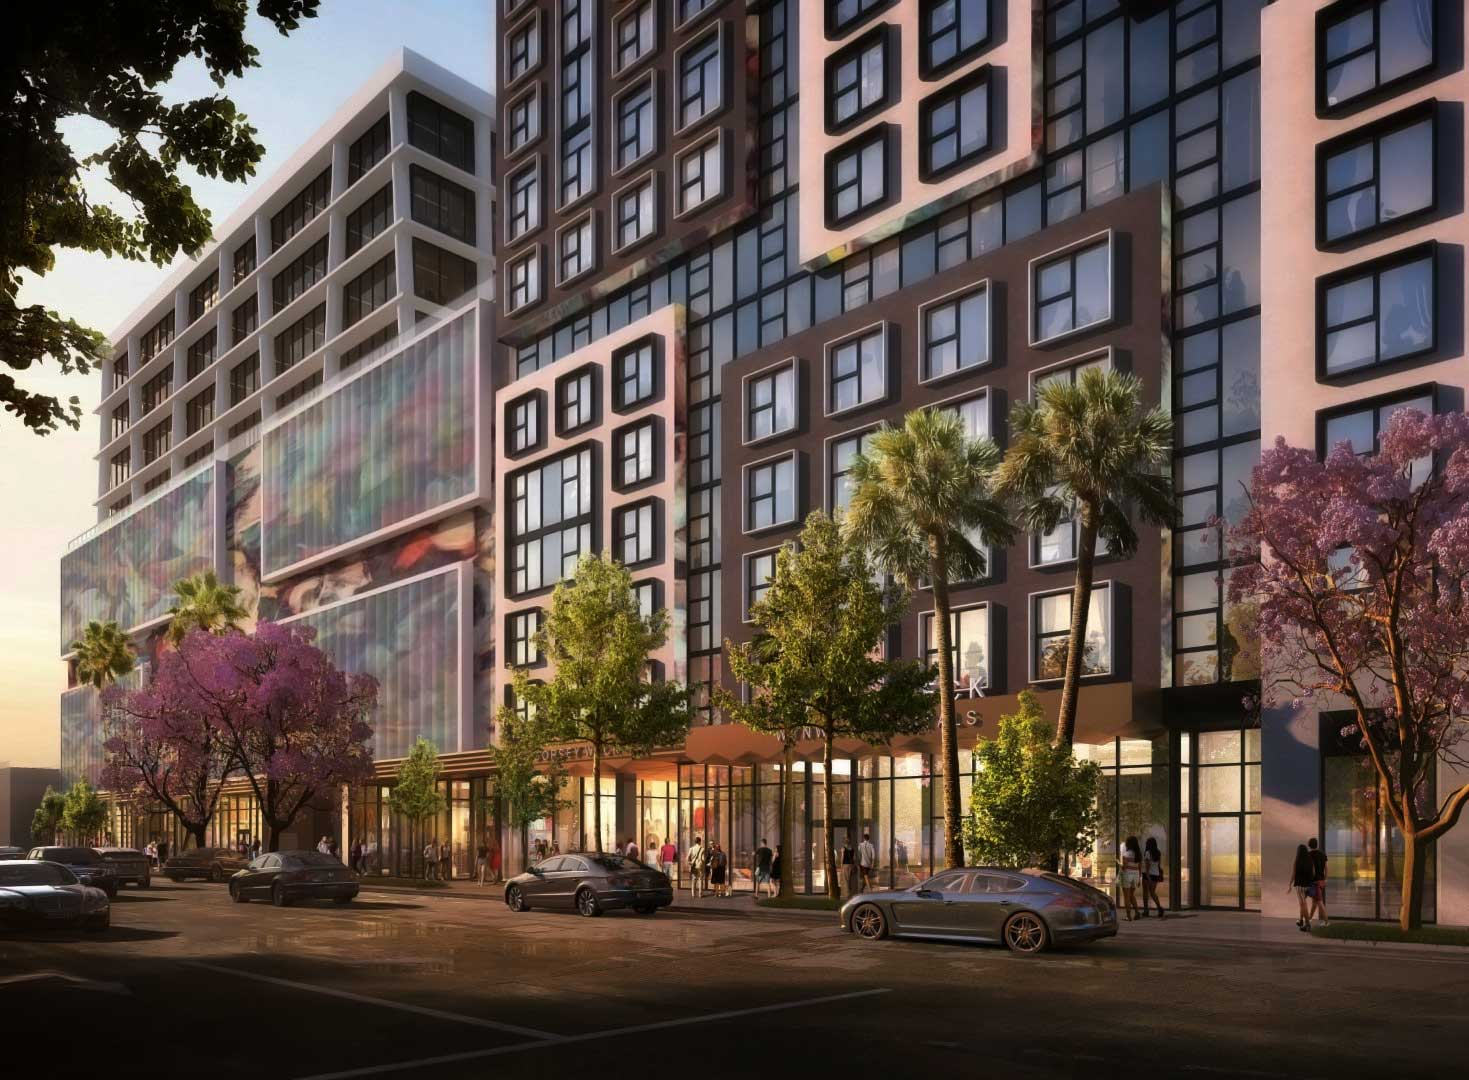 Related, W5 Group plan 'co-living' project in Miami's Wynwood